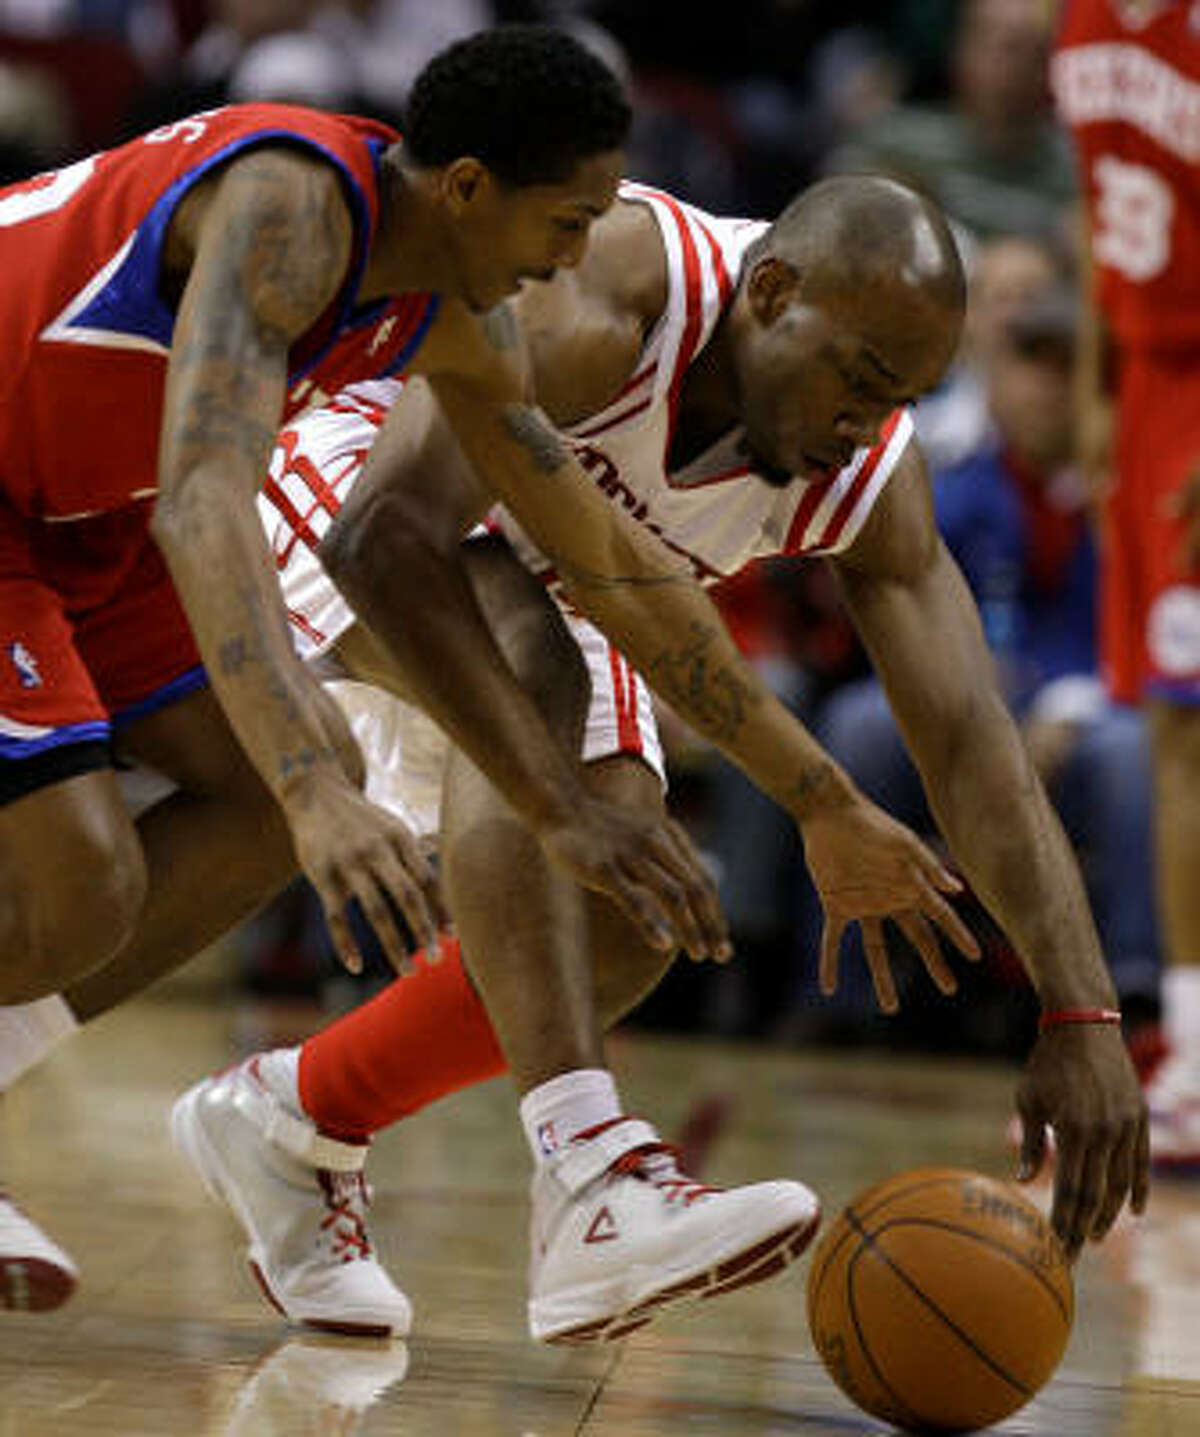 Philadelphia's Louis Williams, left, and Rockets forward Carl Landry battle for a loose ball.